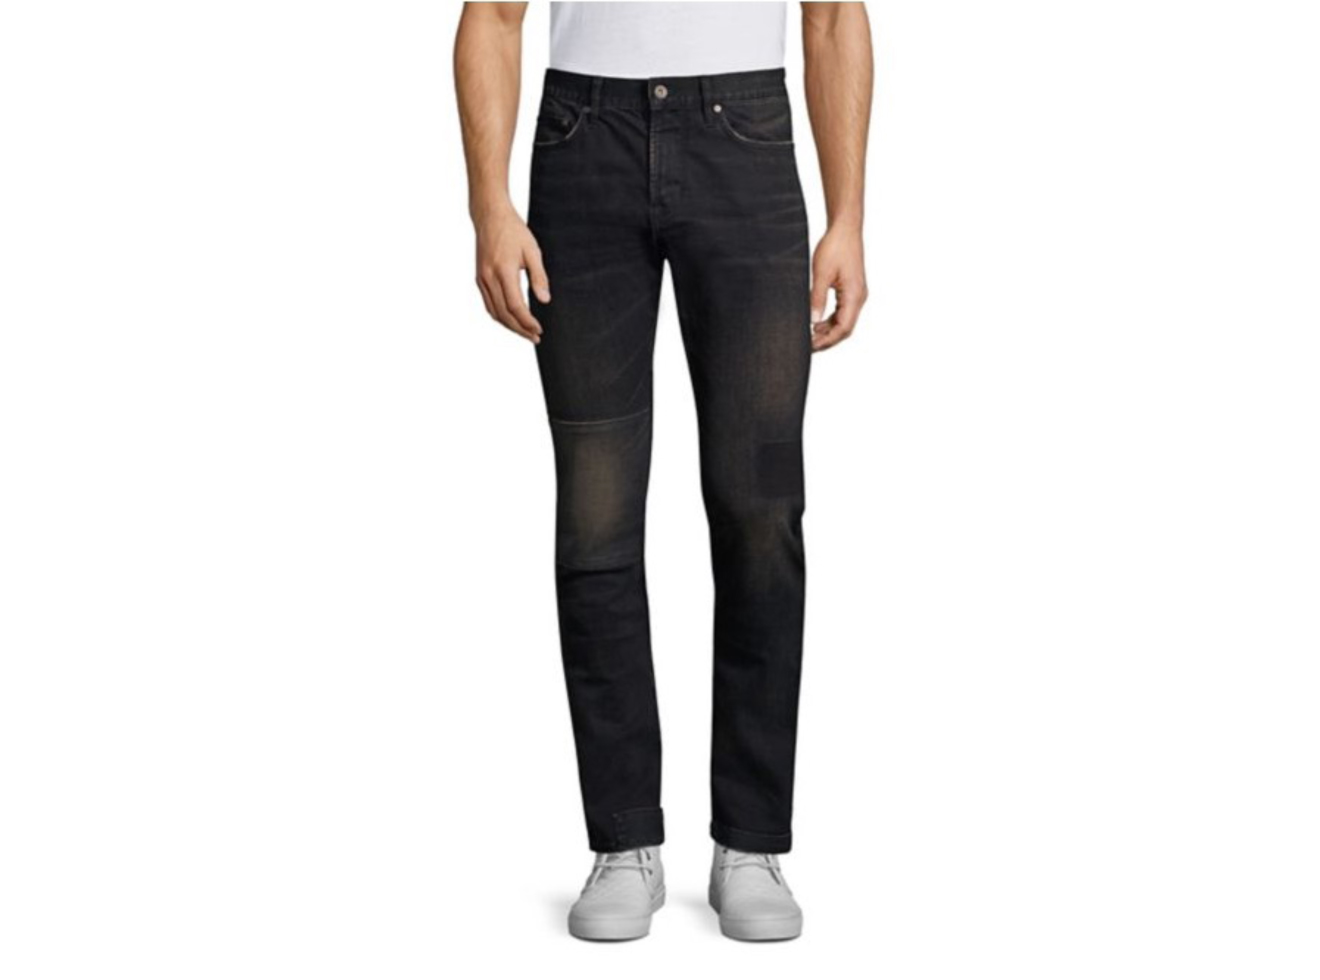 John Varvatos Star U.S.A. Wight Slim-Fit Patch Jeans